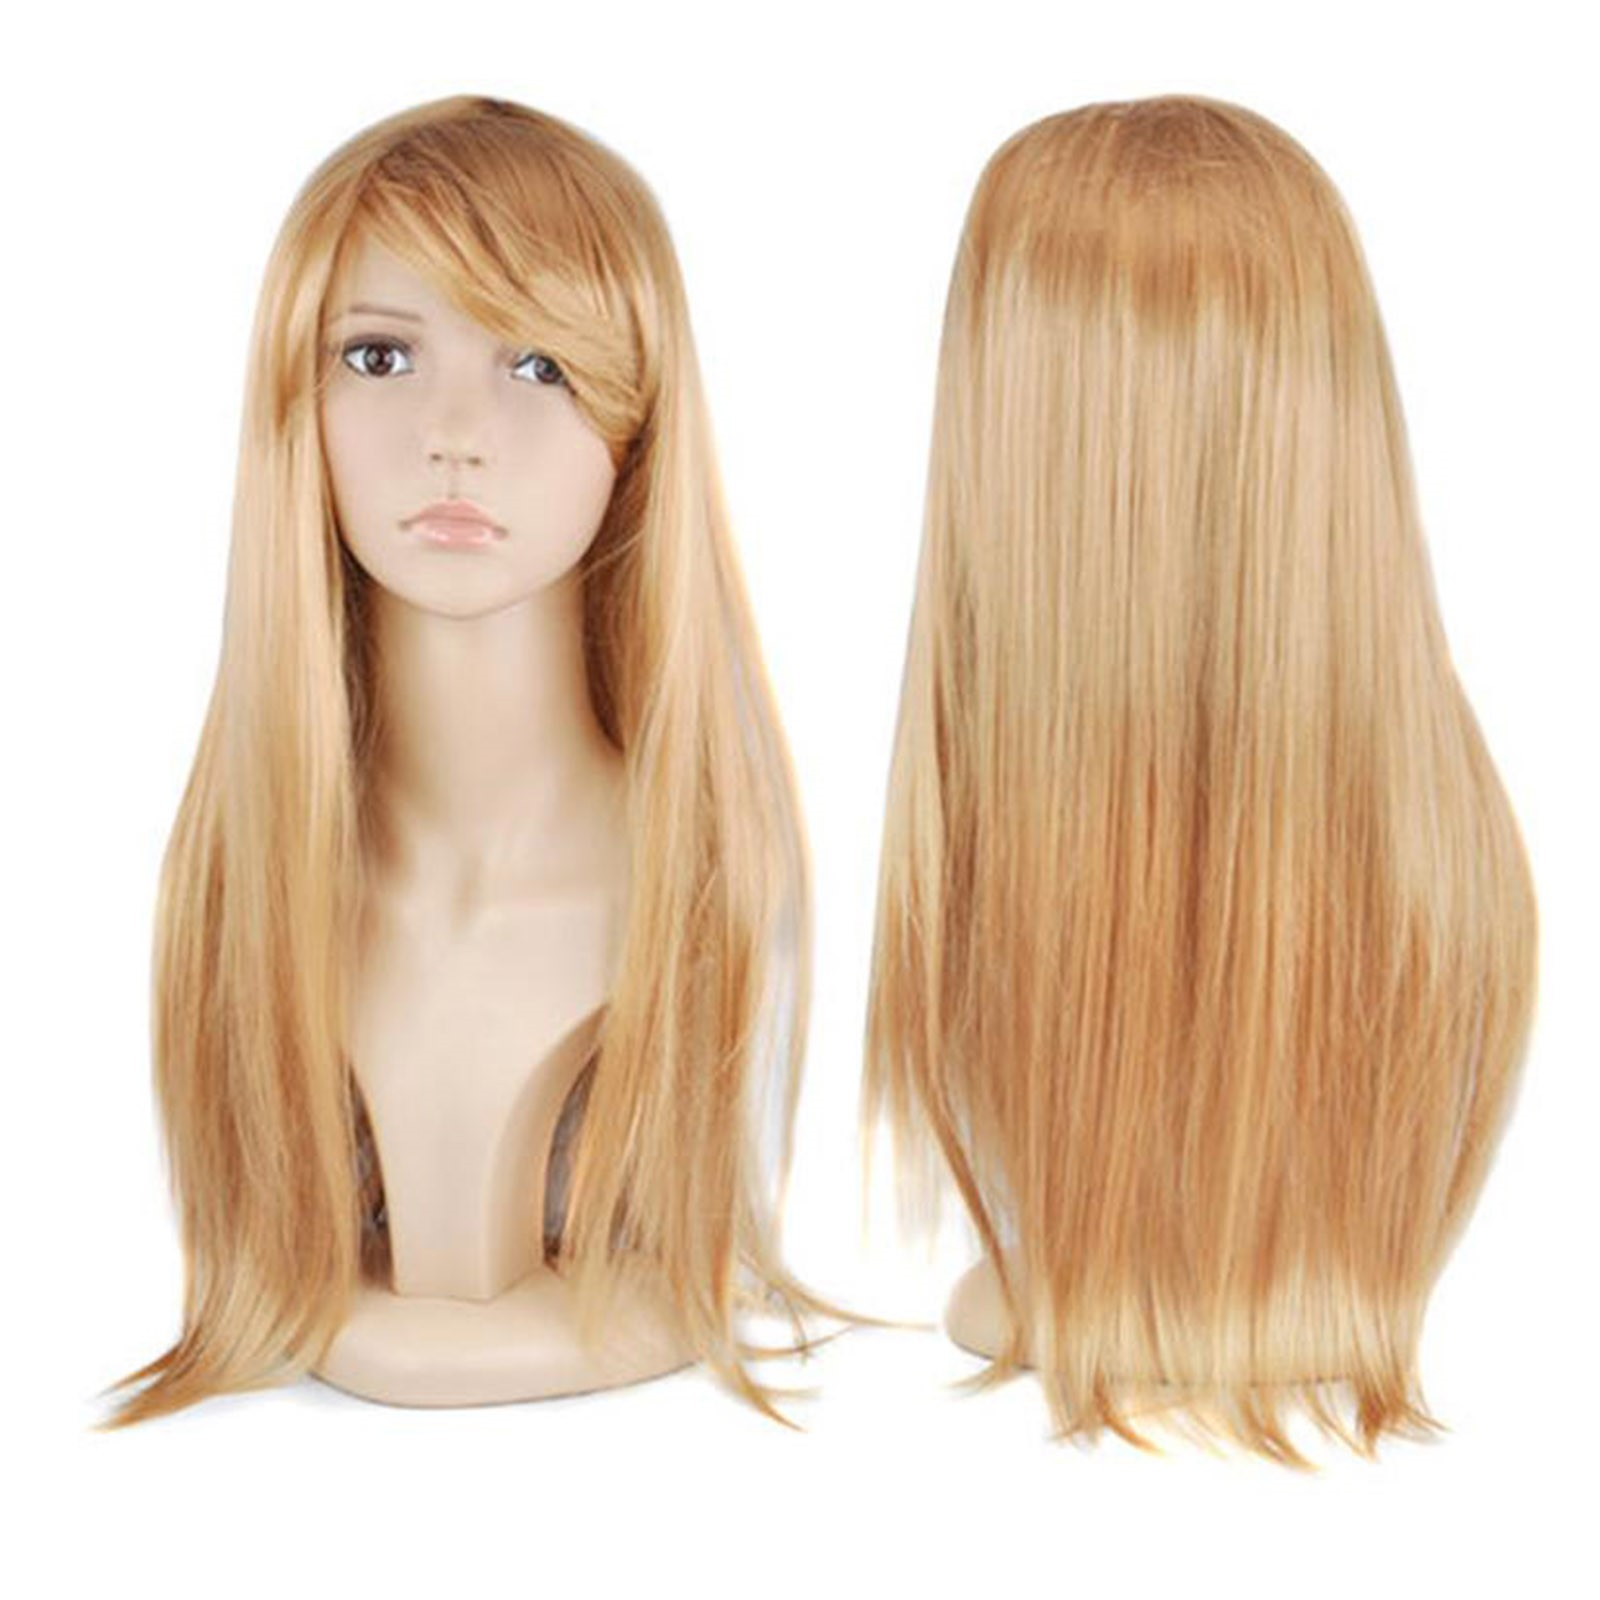 "WOMENS LADIES LONG 19"" STRAIGHT WIG FANCY DRESS COSPLAY ..."